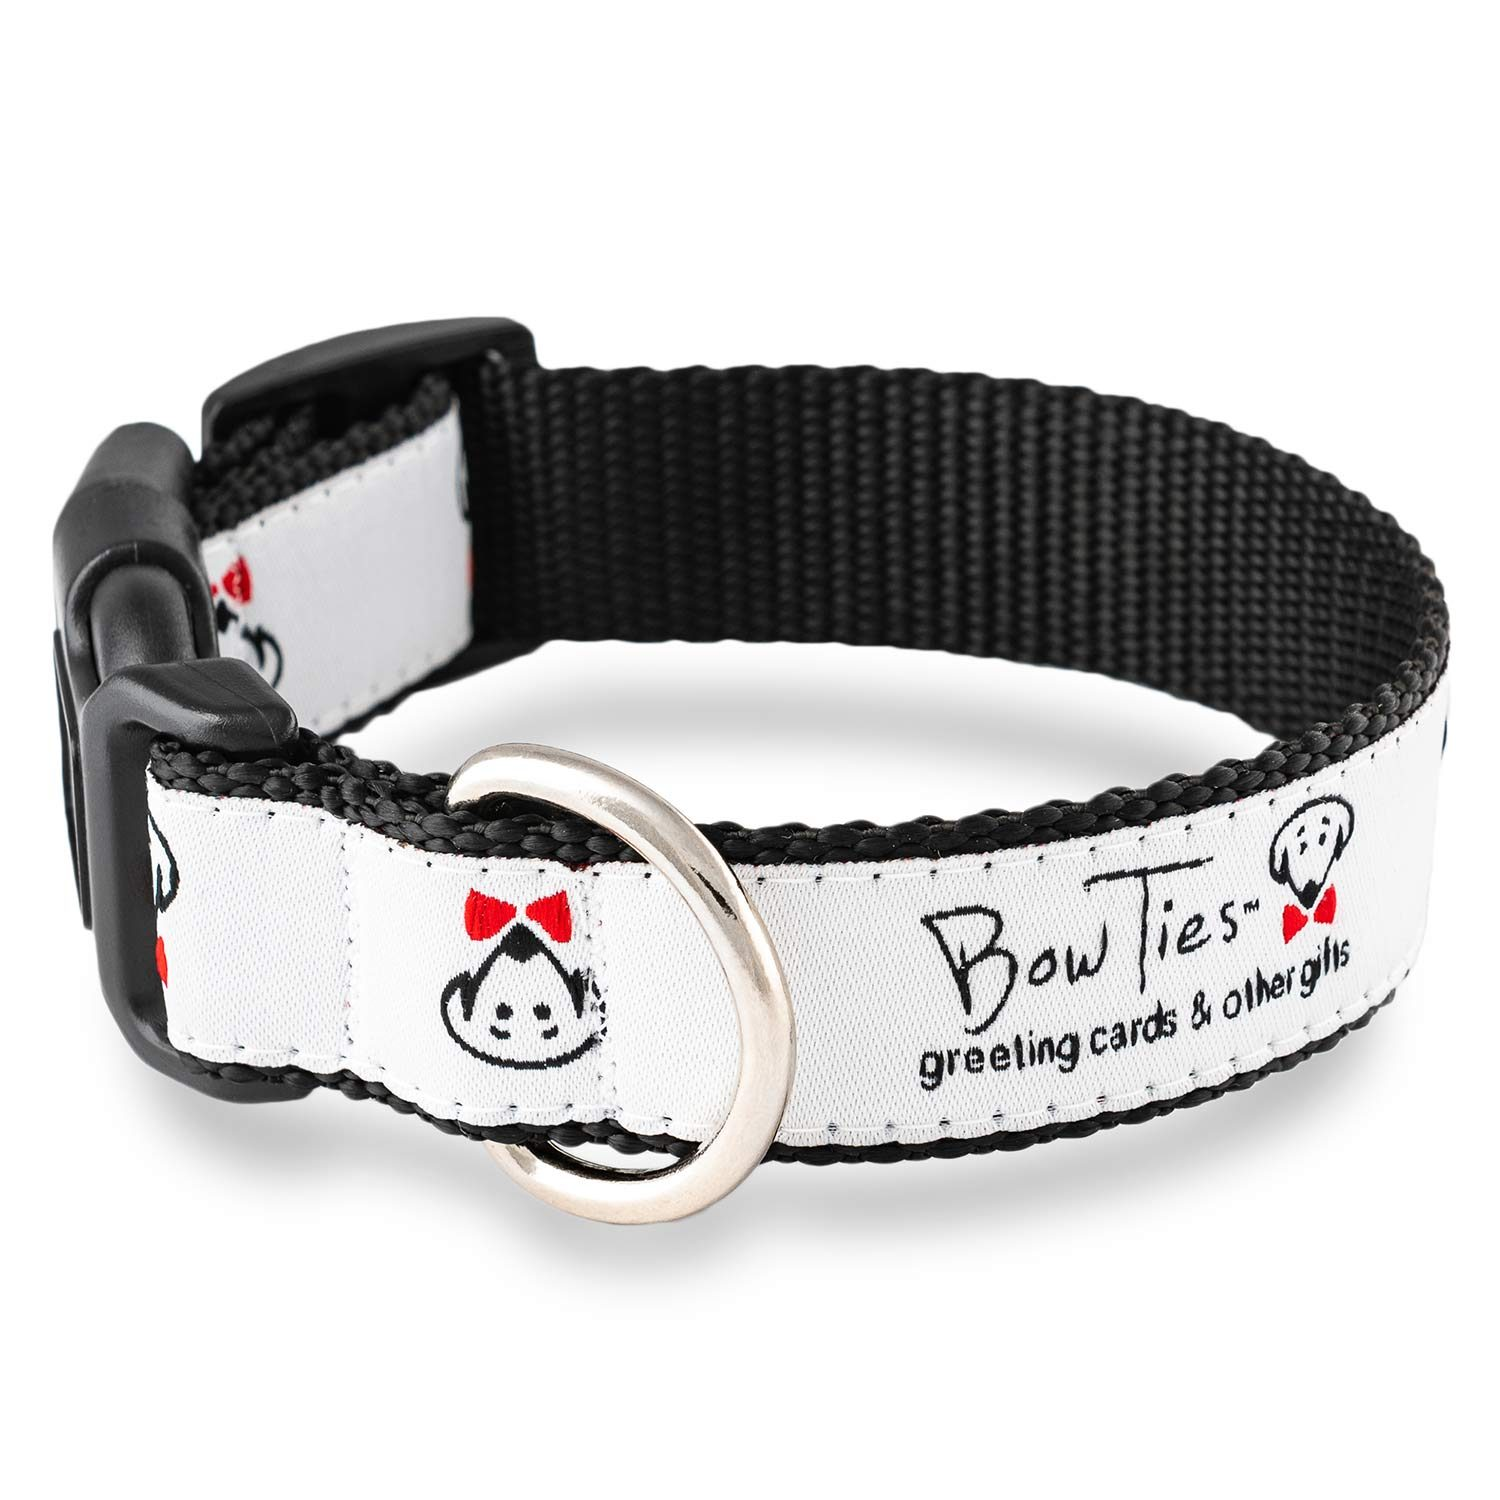 Pet Collar by Beau Tyler in Small size